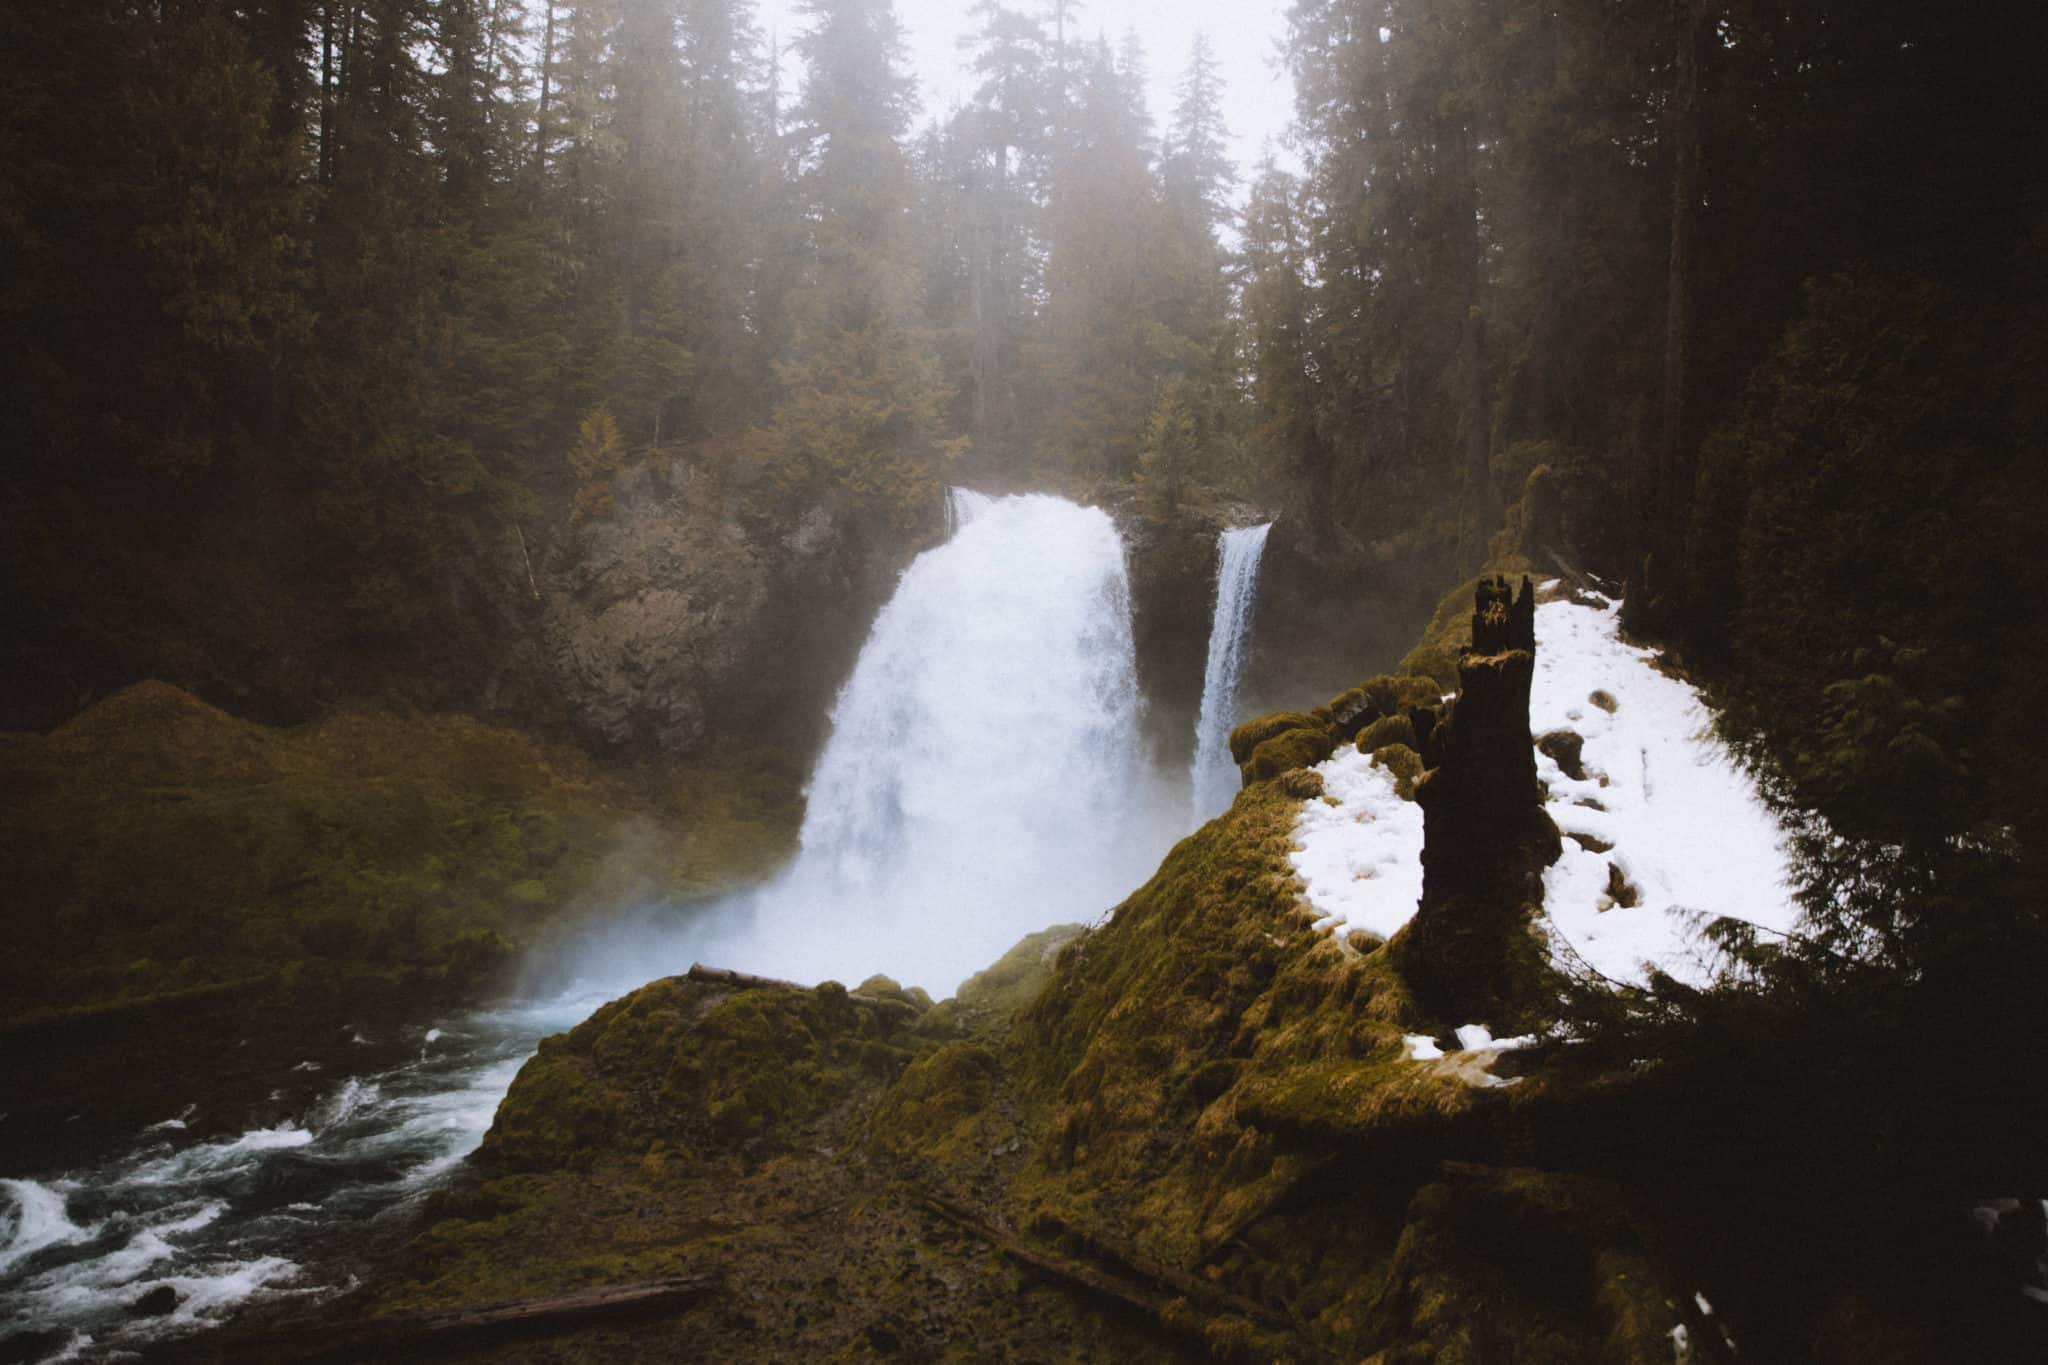 Waterfalls in Oregon - Sahalie Falls